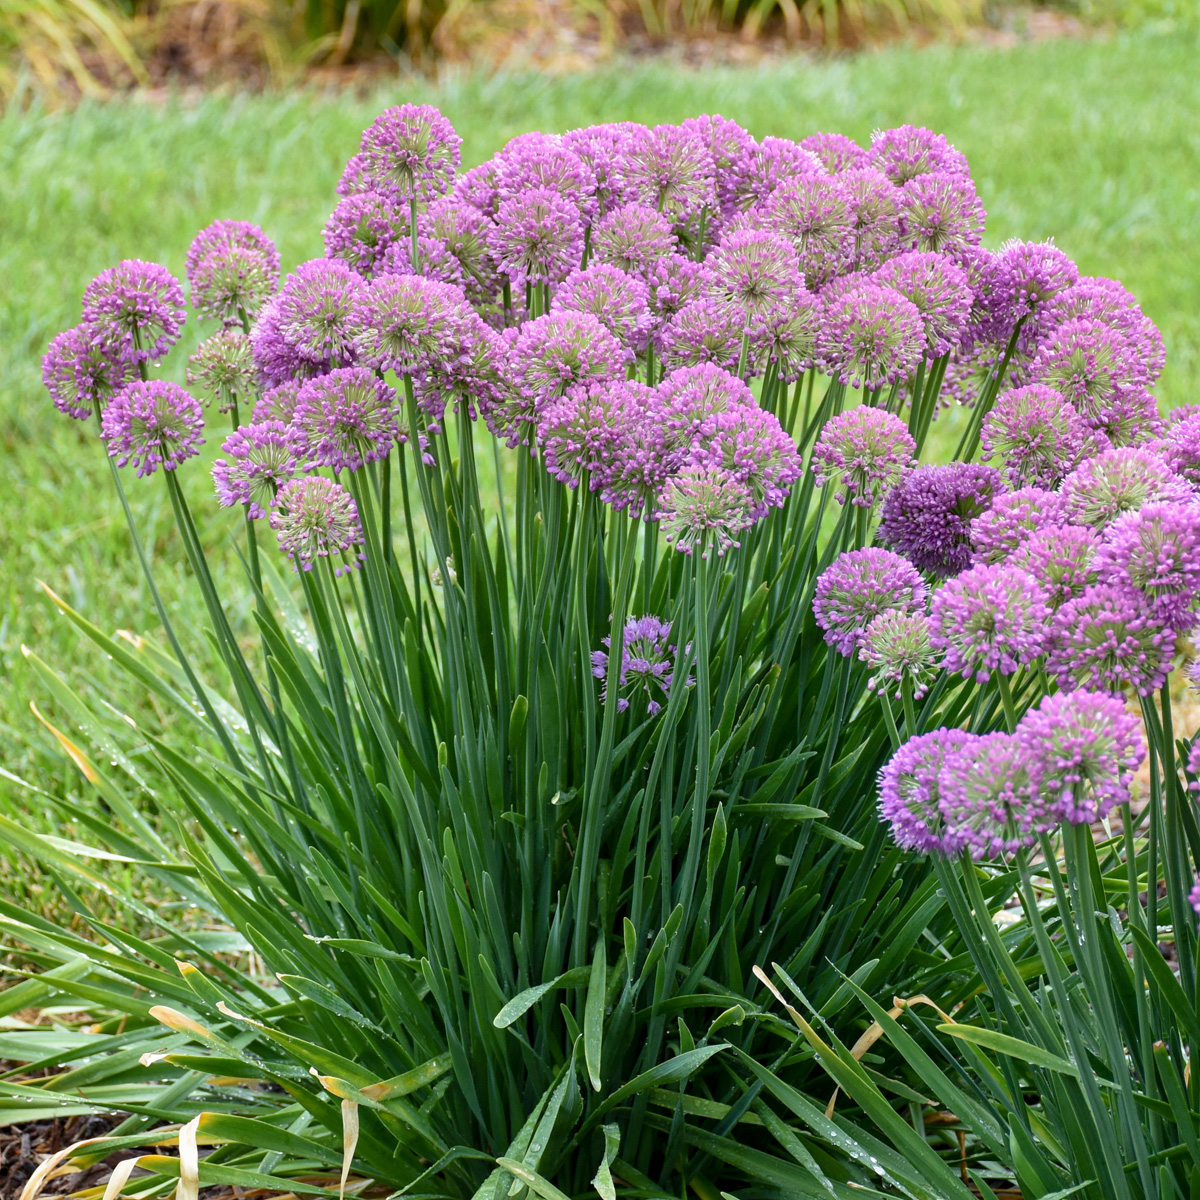 'Serendipity' allium (photo credit: Walters Gardens, Inc.)